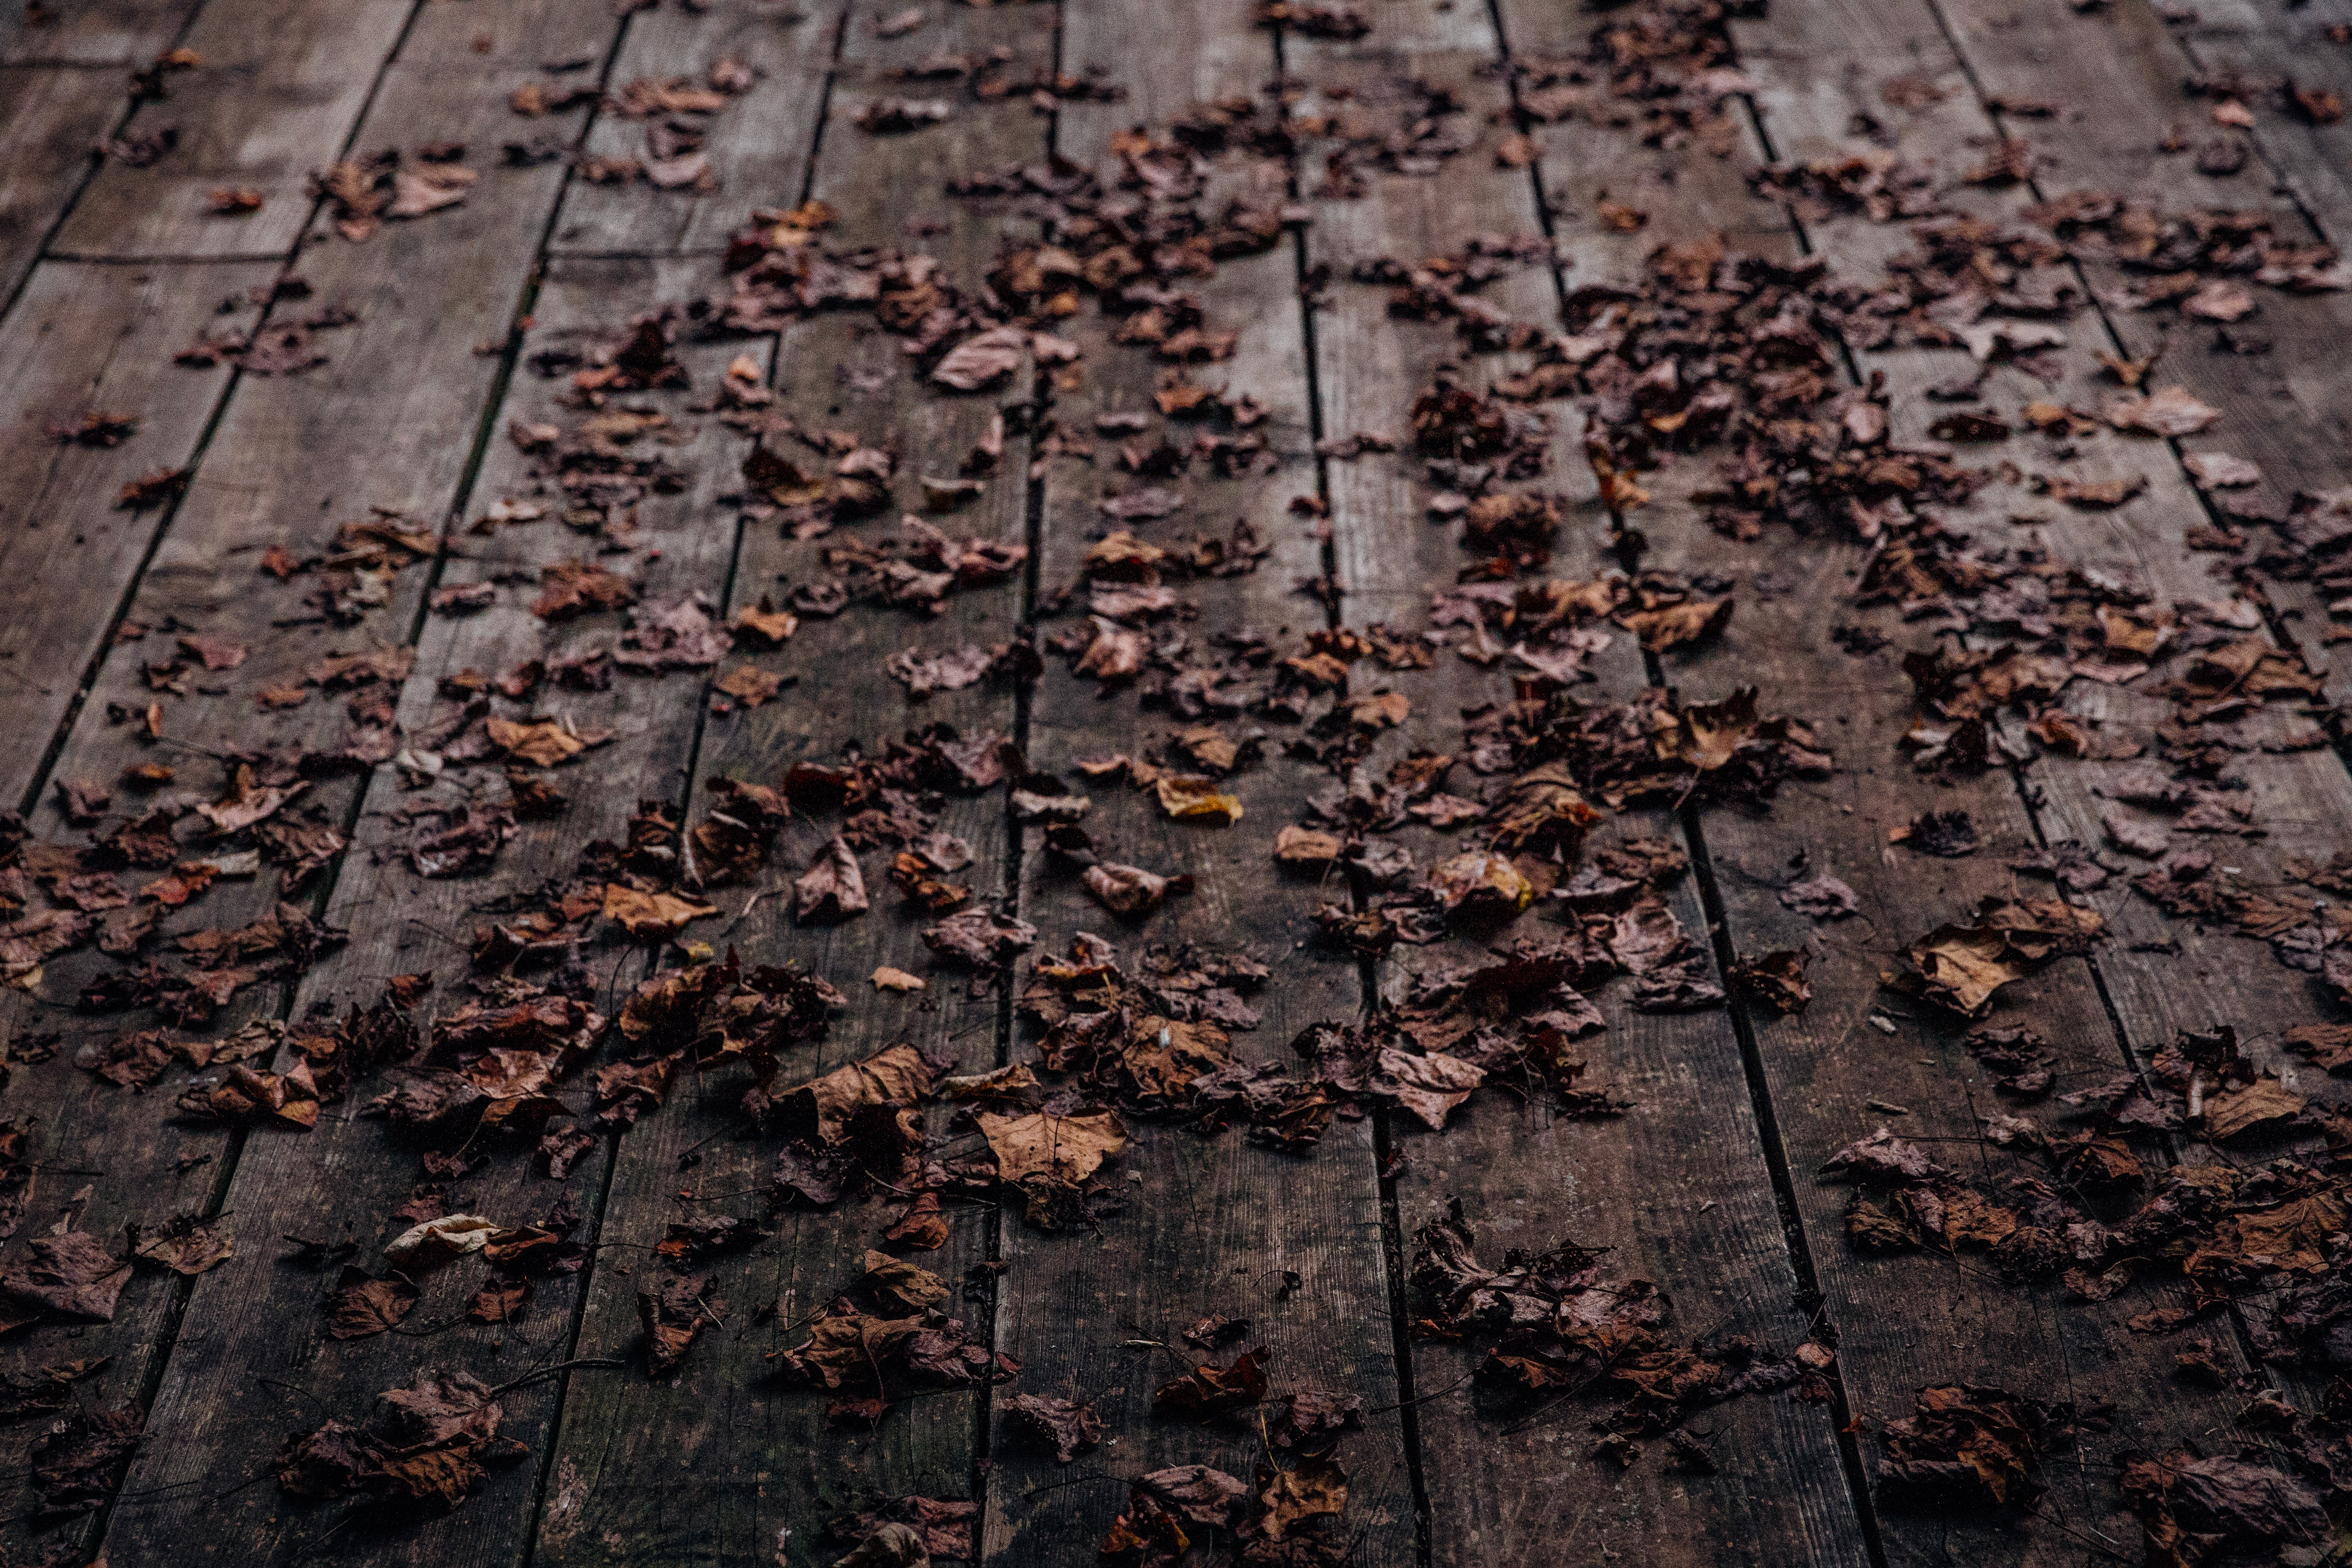 A wooden deck covered in curled-up autumn leaves